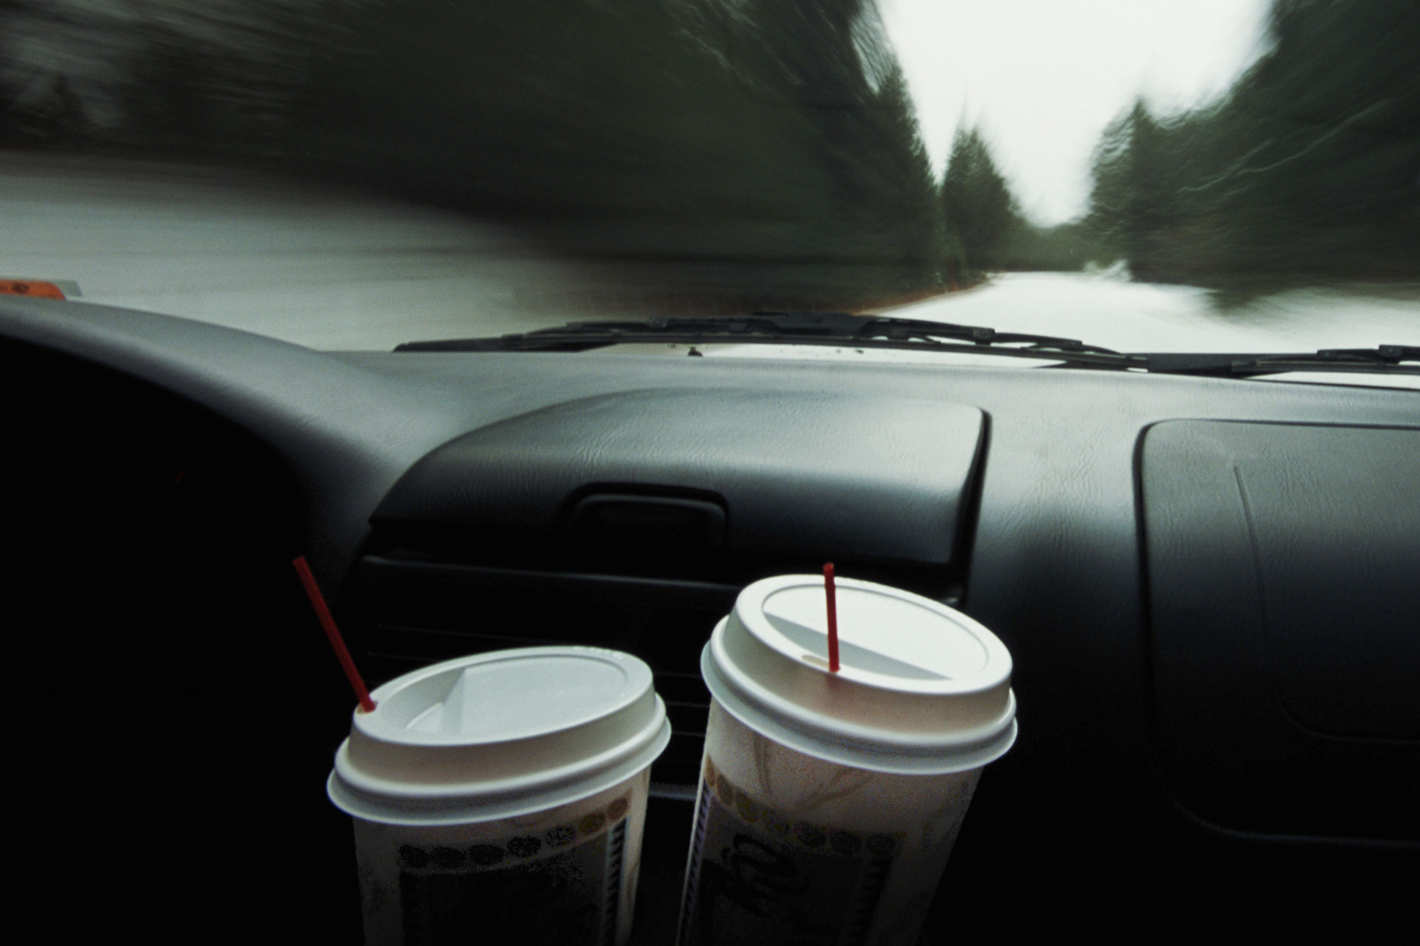 UAE Motorists Use Coffee to Stay Alert on the Roads